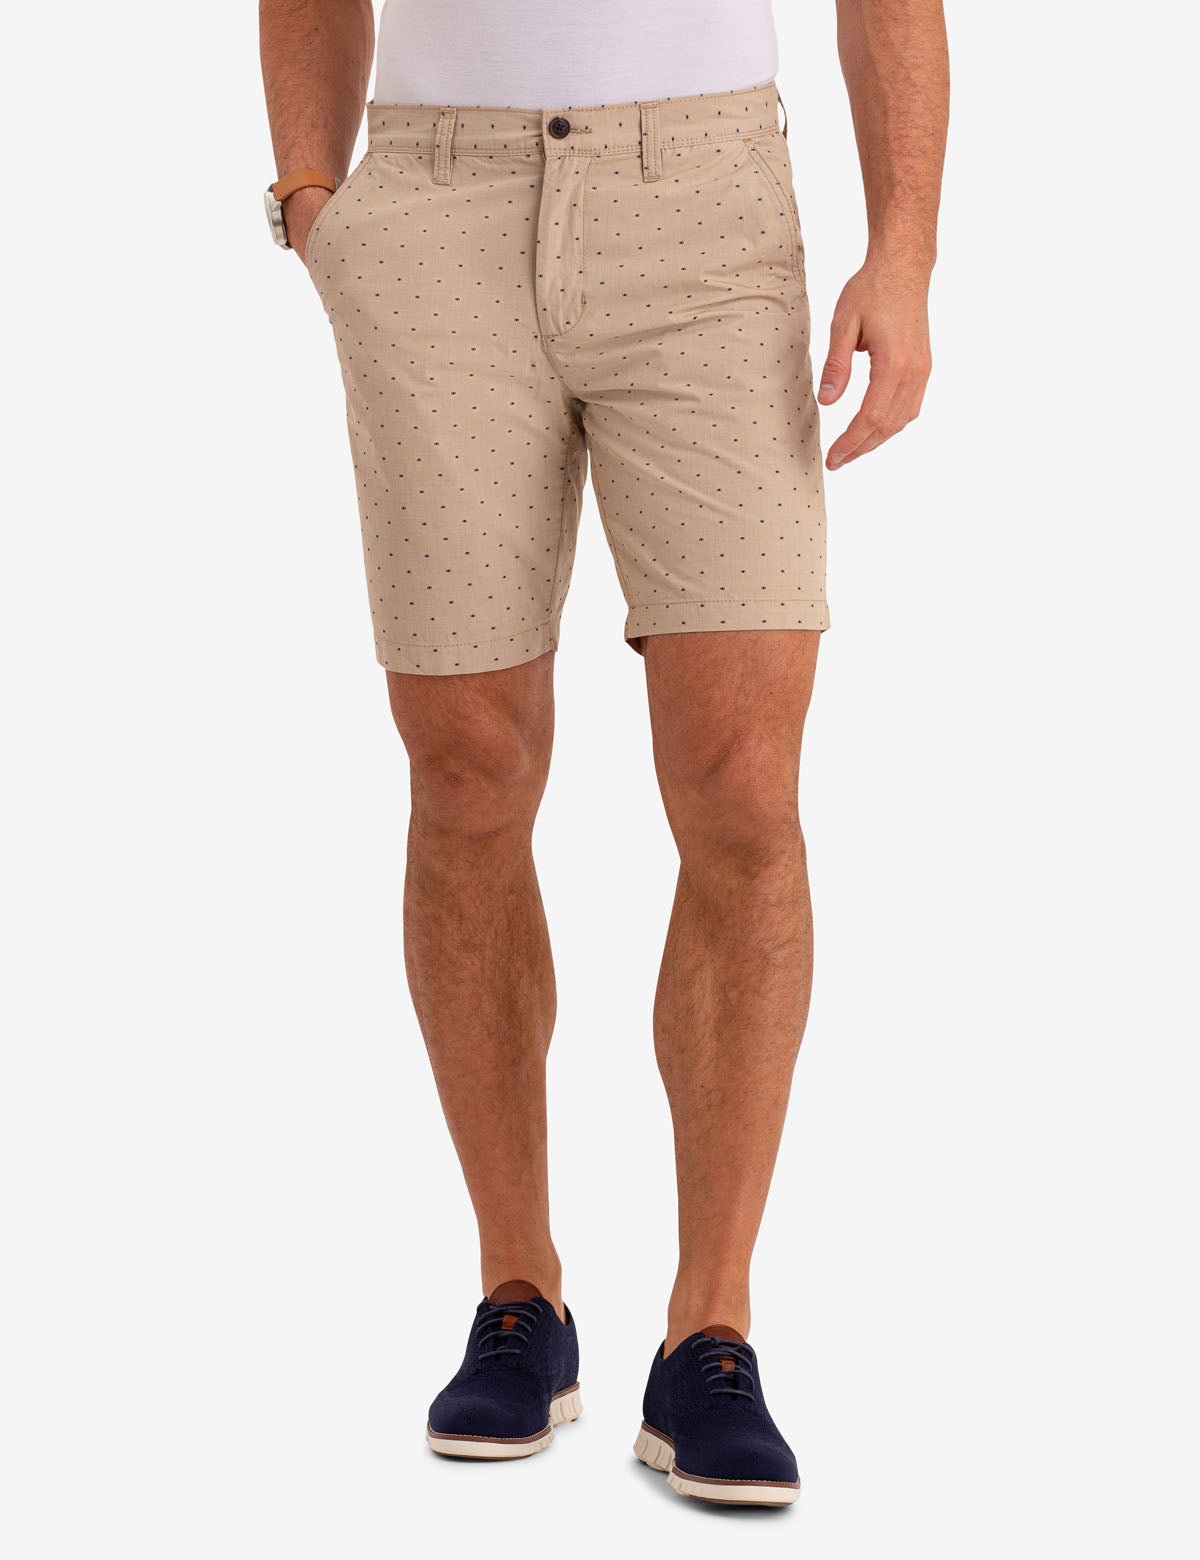 MASON DOT PRINT TWILL SHORTS - U.S. Polo Assn.